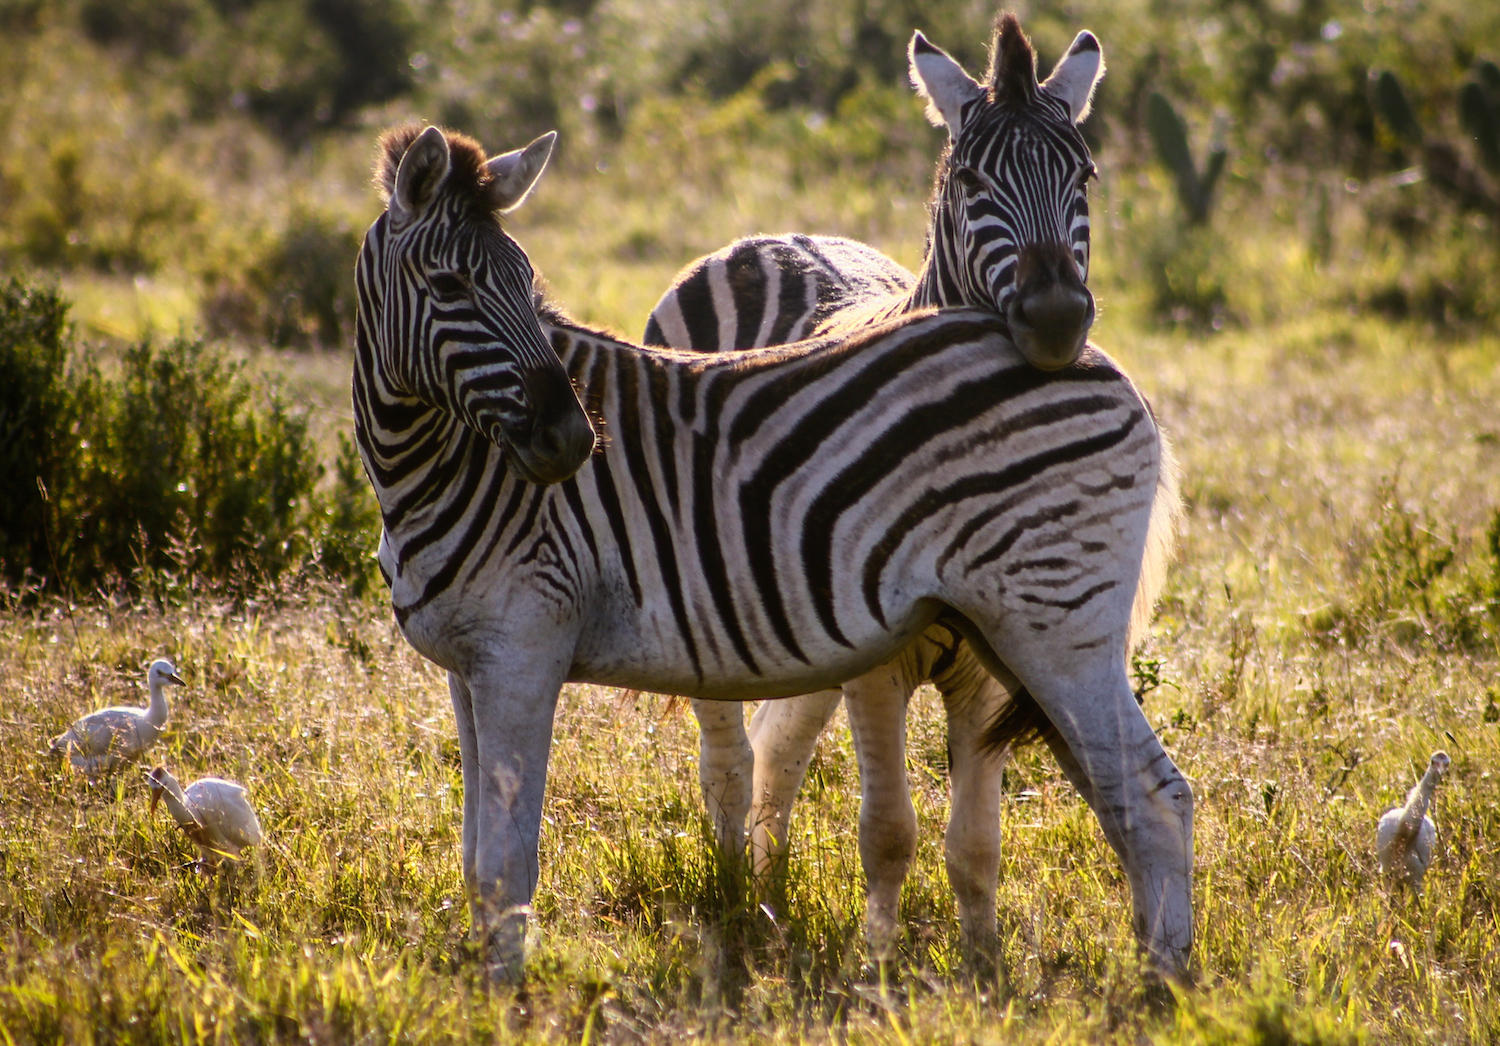 Zebra Rest, South Africa, Canon DSLR